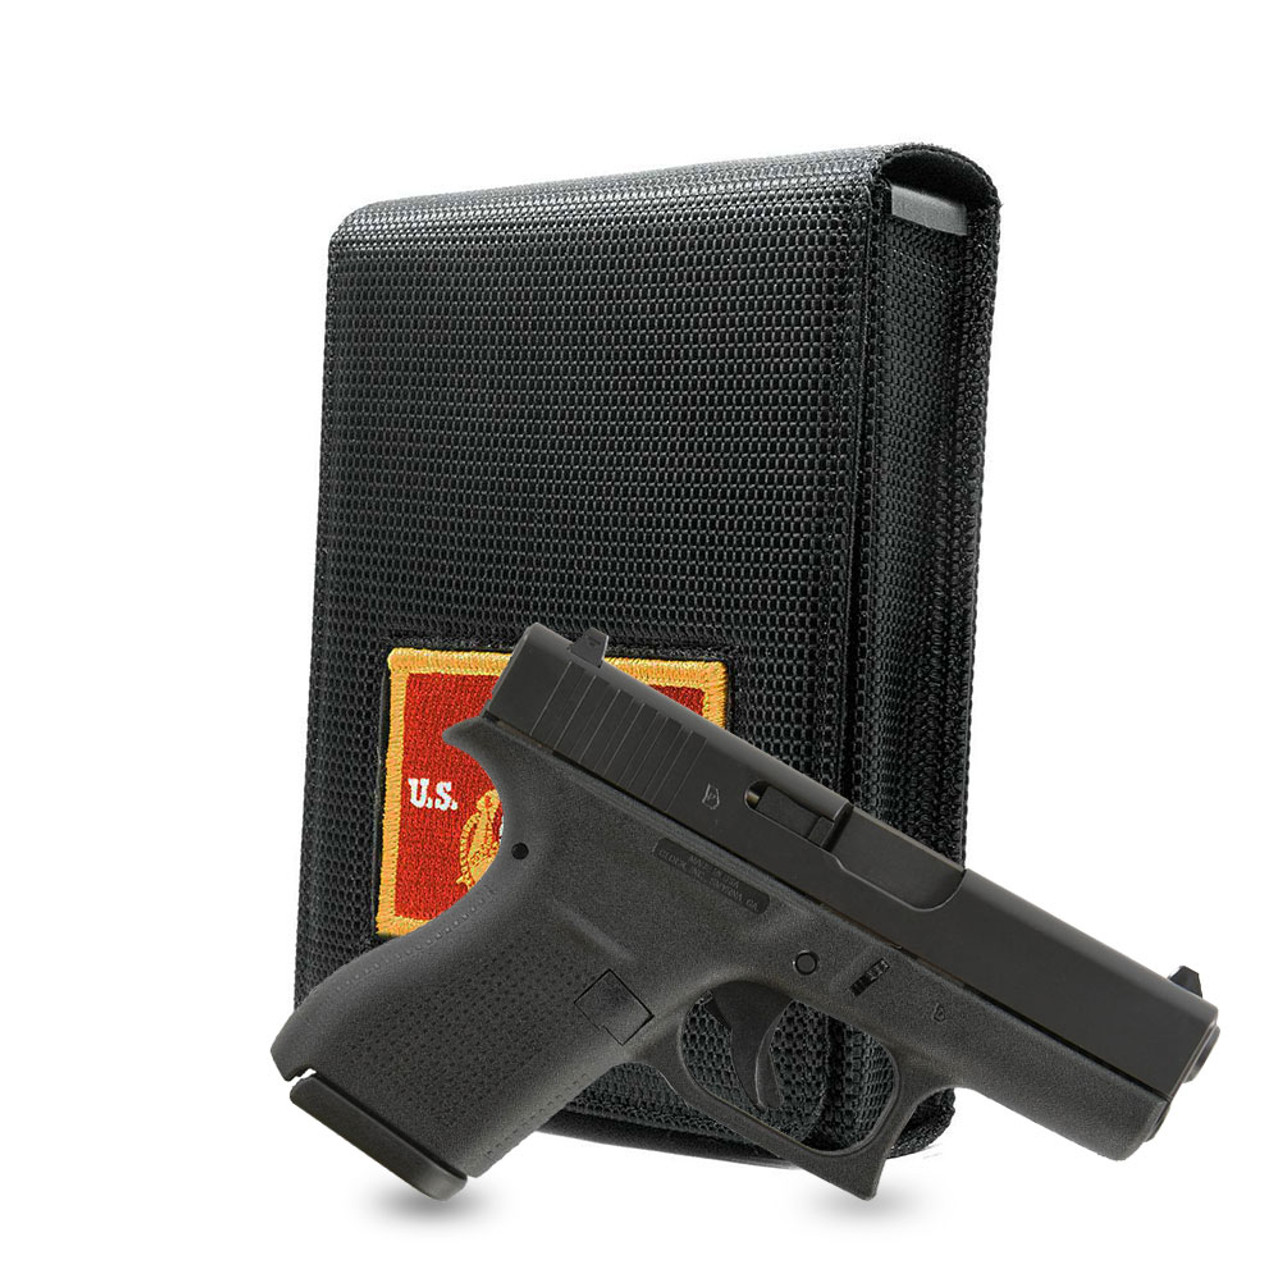 Glock 42 Marine Corps Tactical Patch Holster